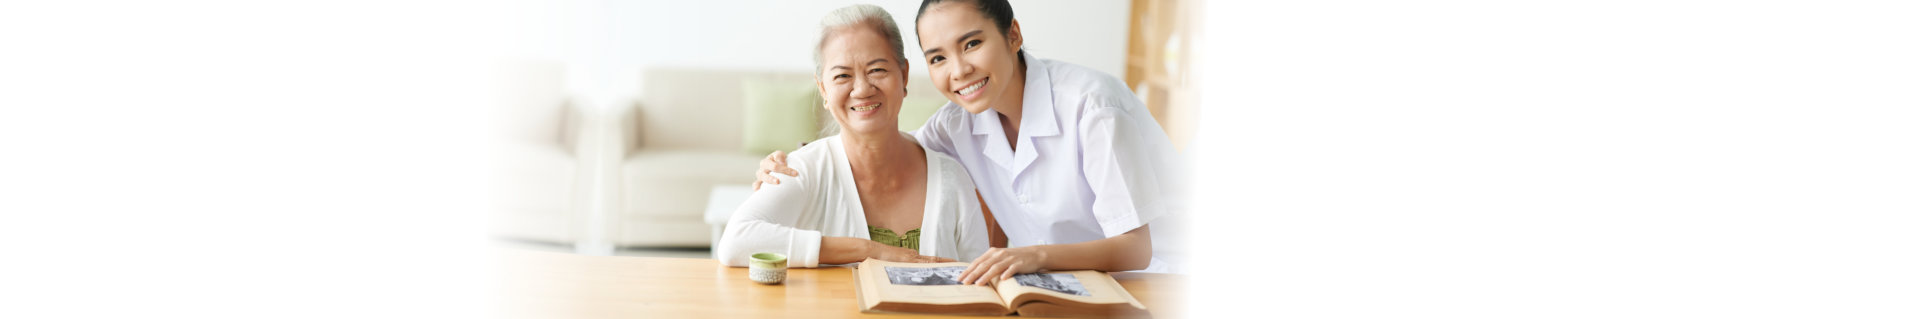 caregiver and senior woman reading a book